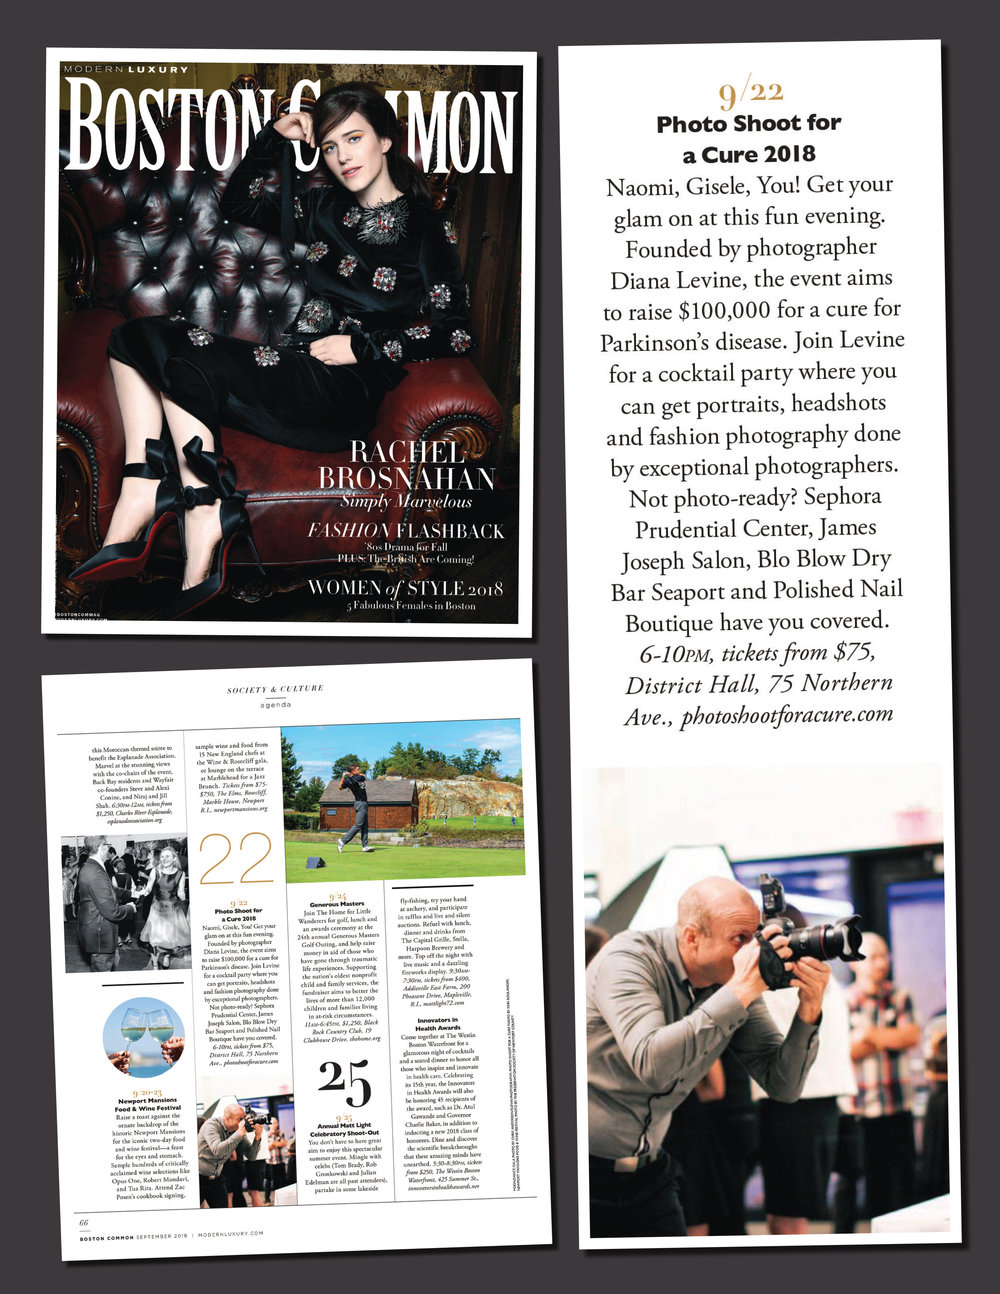 _BostonCommon-PhotoShootForACure.jpg